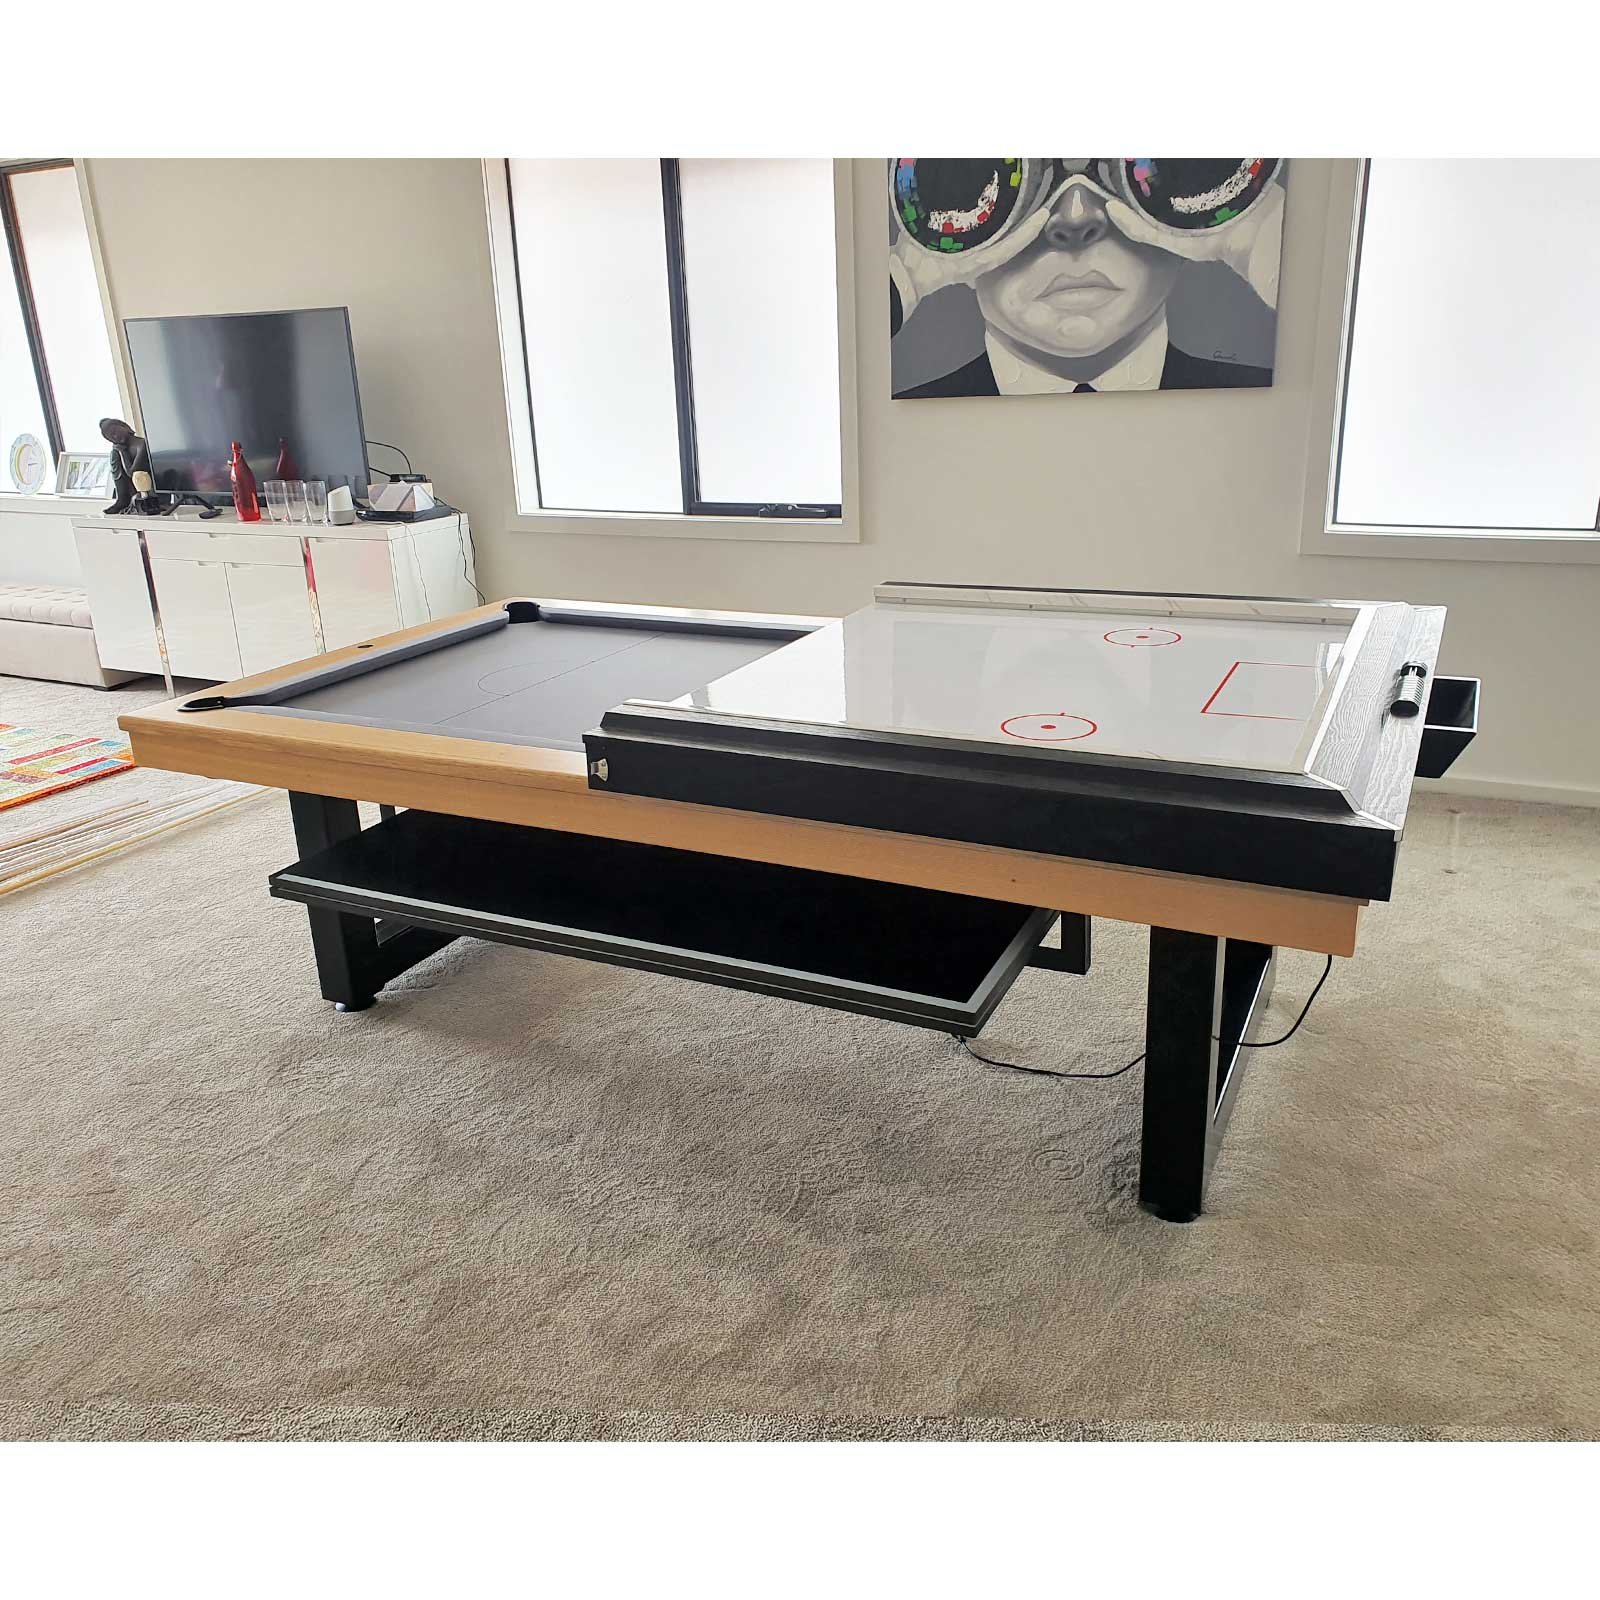 8ft 2 pc. PVC Air Hockey Table Top - Cyclone